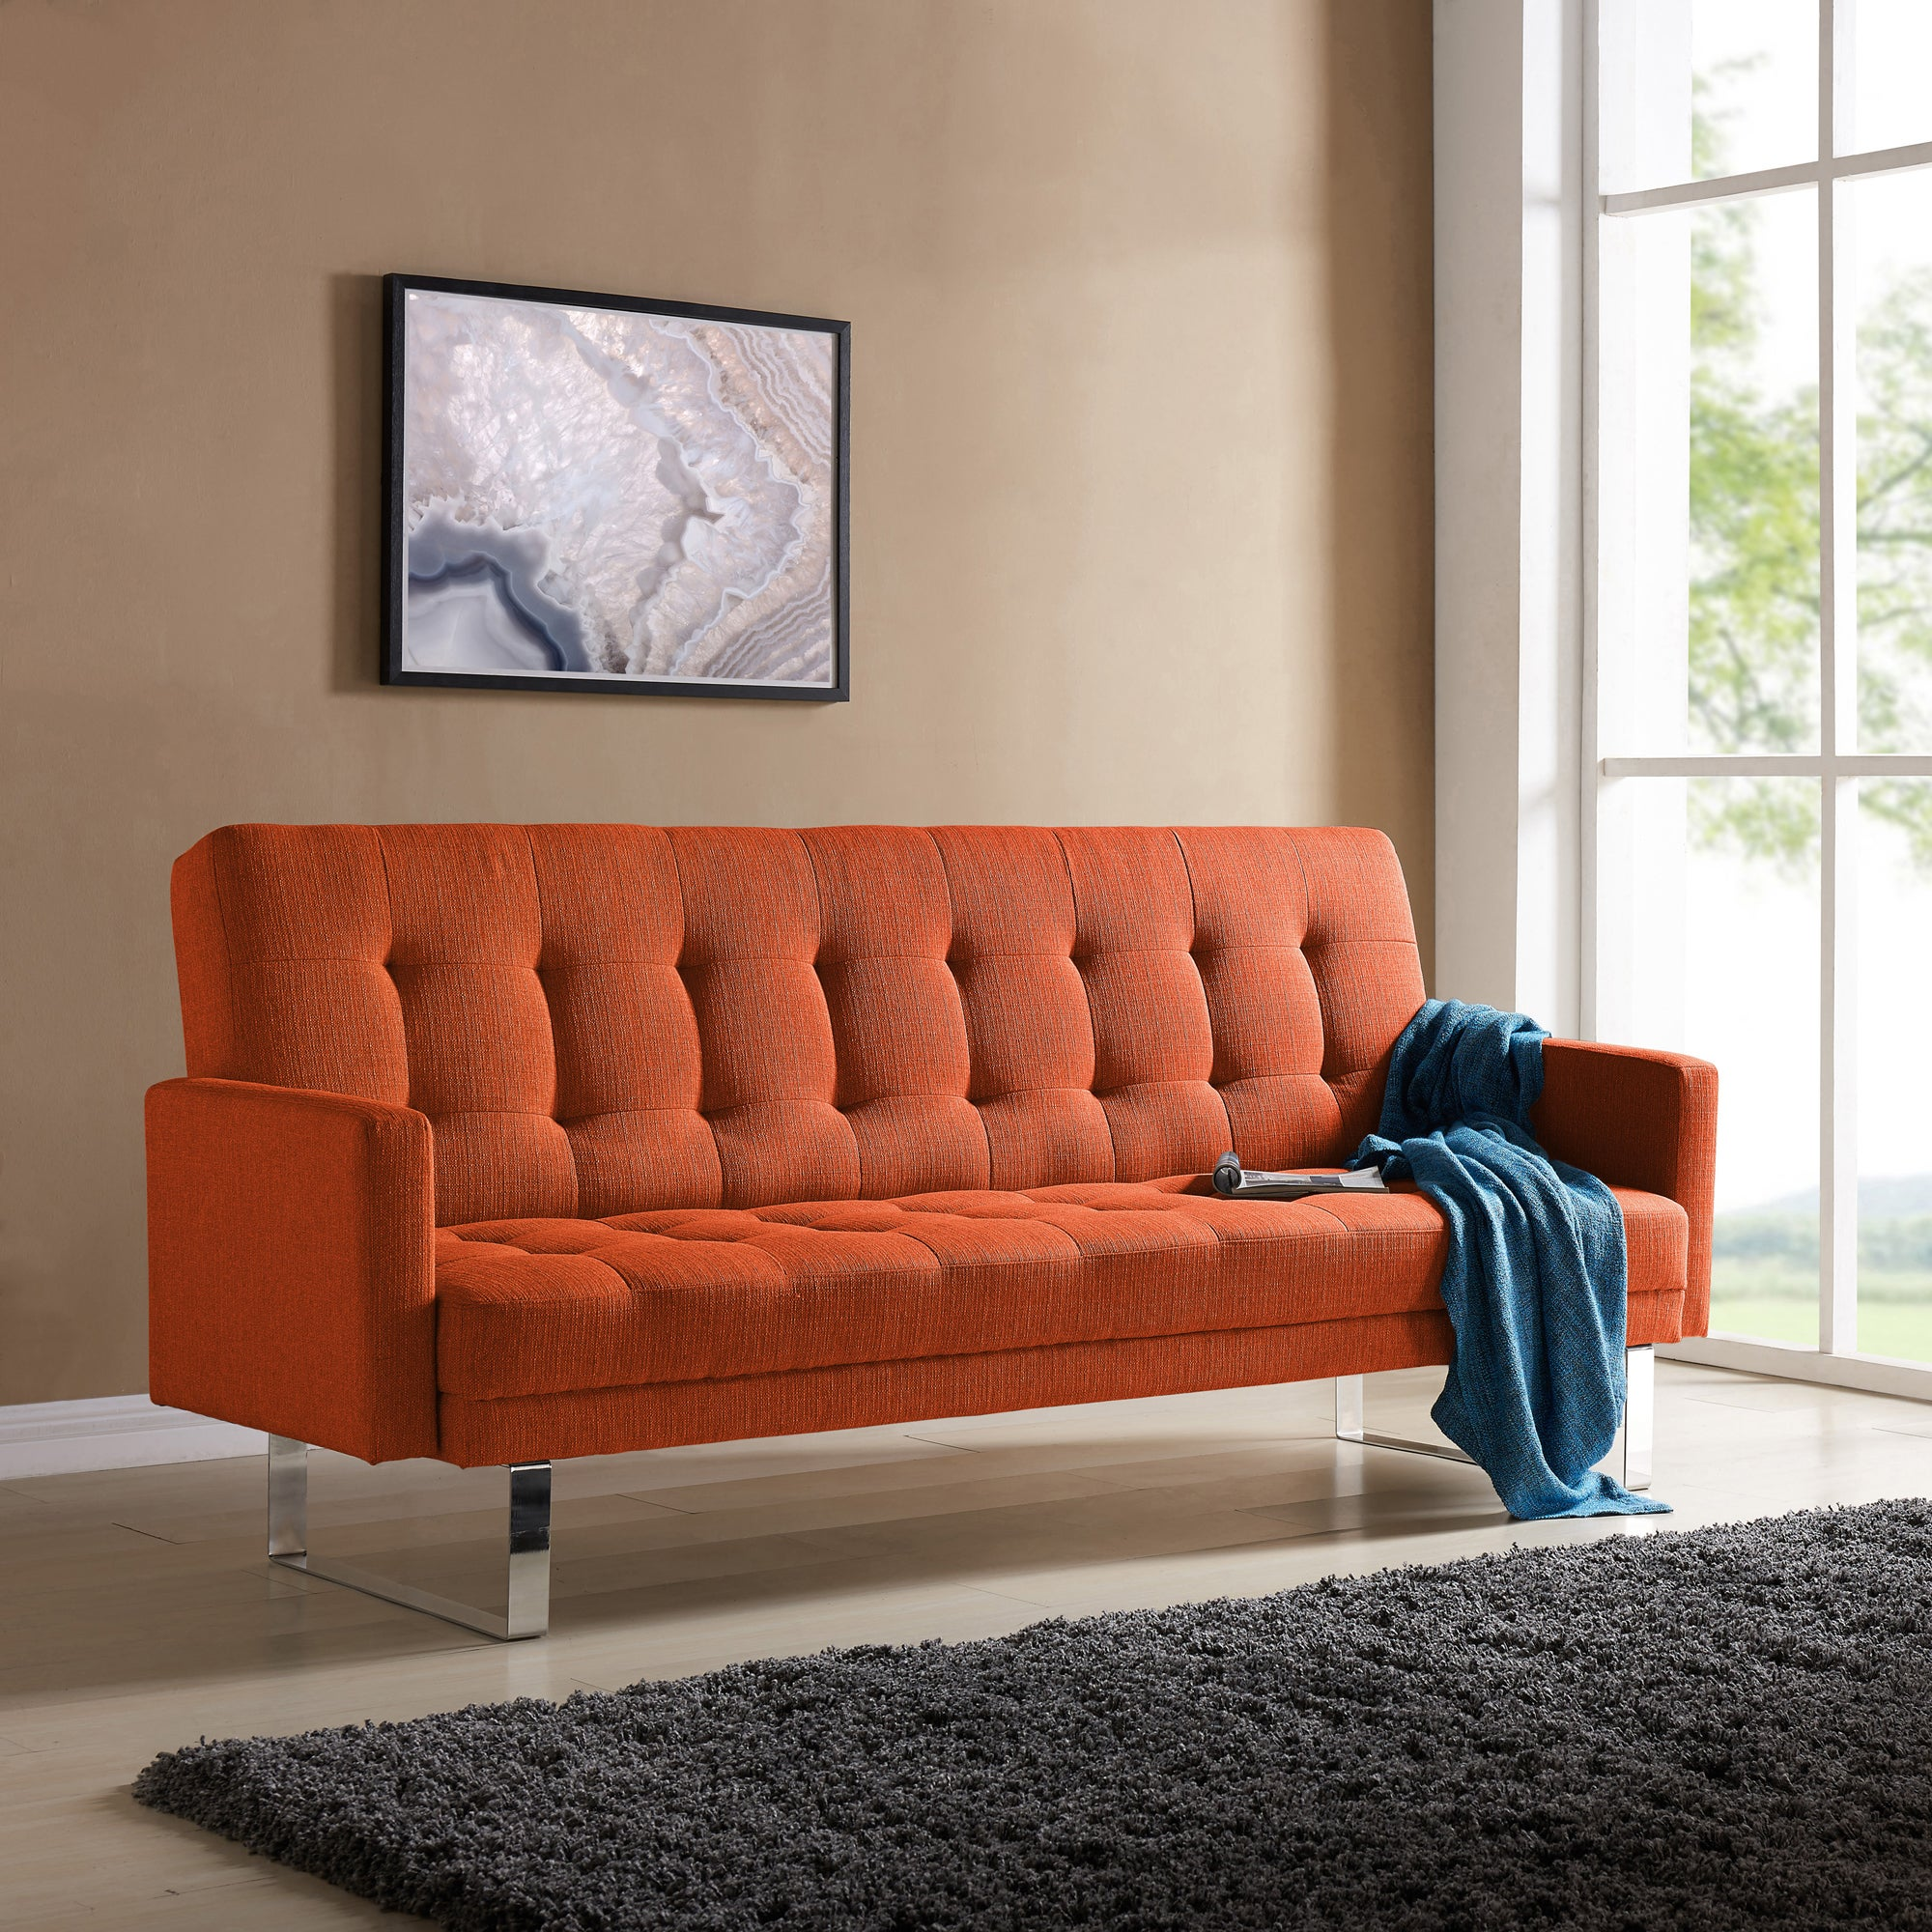 Strange Handy Living Springfield Orange Linen Click Clack Futon Sofa Bed Caraccident5 Cool Chair Designs And Ideas Caraccident5Info